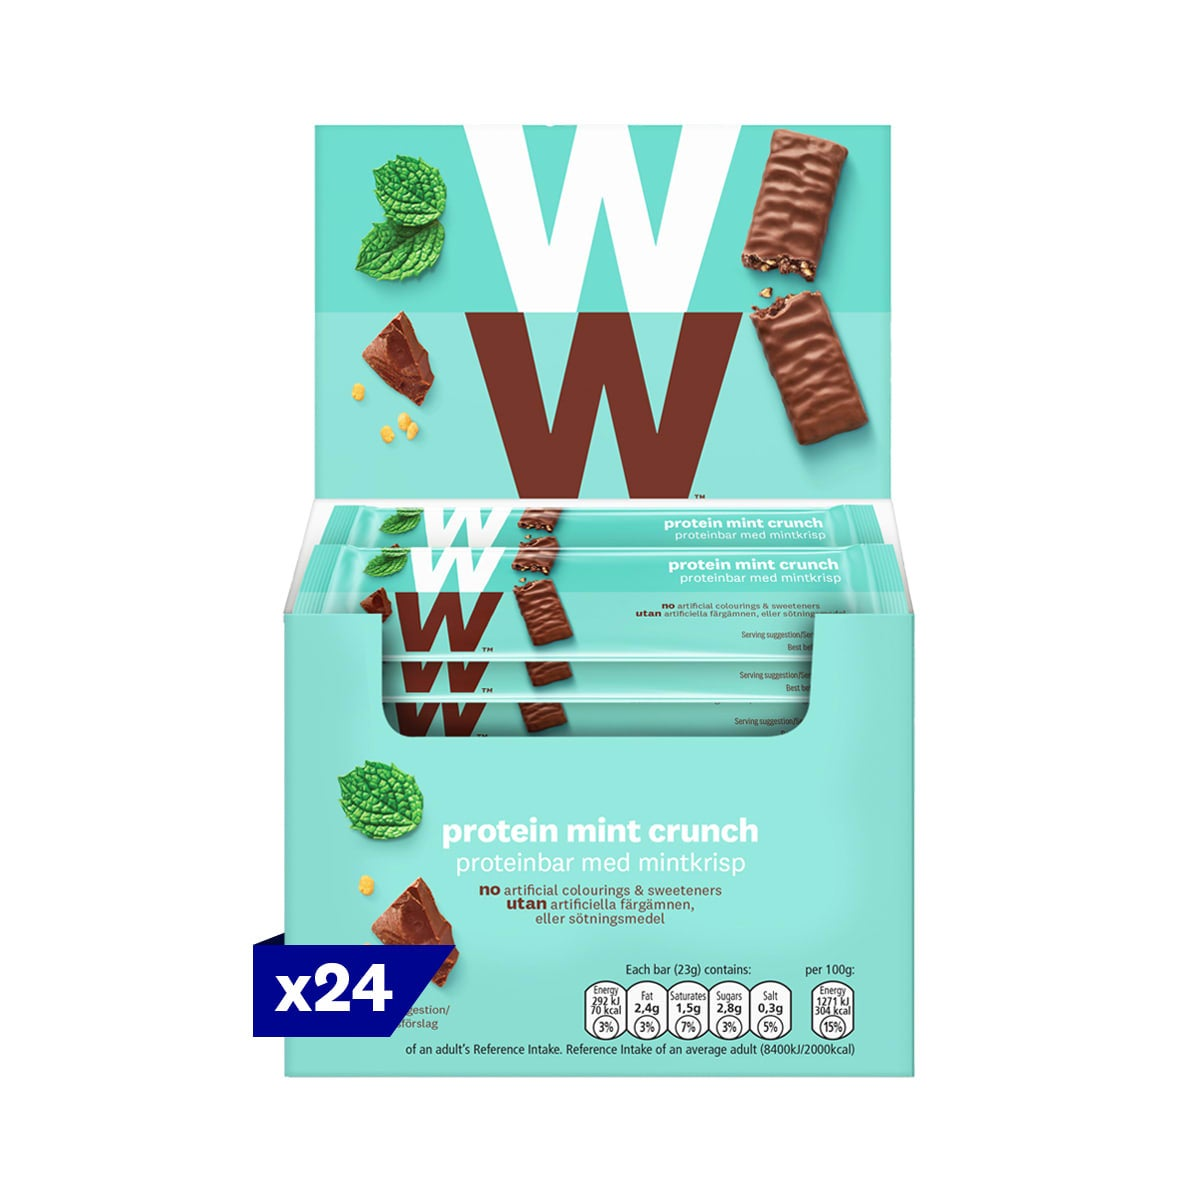 Box of 24, WW Protein Mint Crunch Bar, wrapped in velvety milk chocolate, 2 SmartPoints values, high in protein, suitable for vegetarians